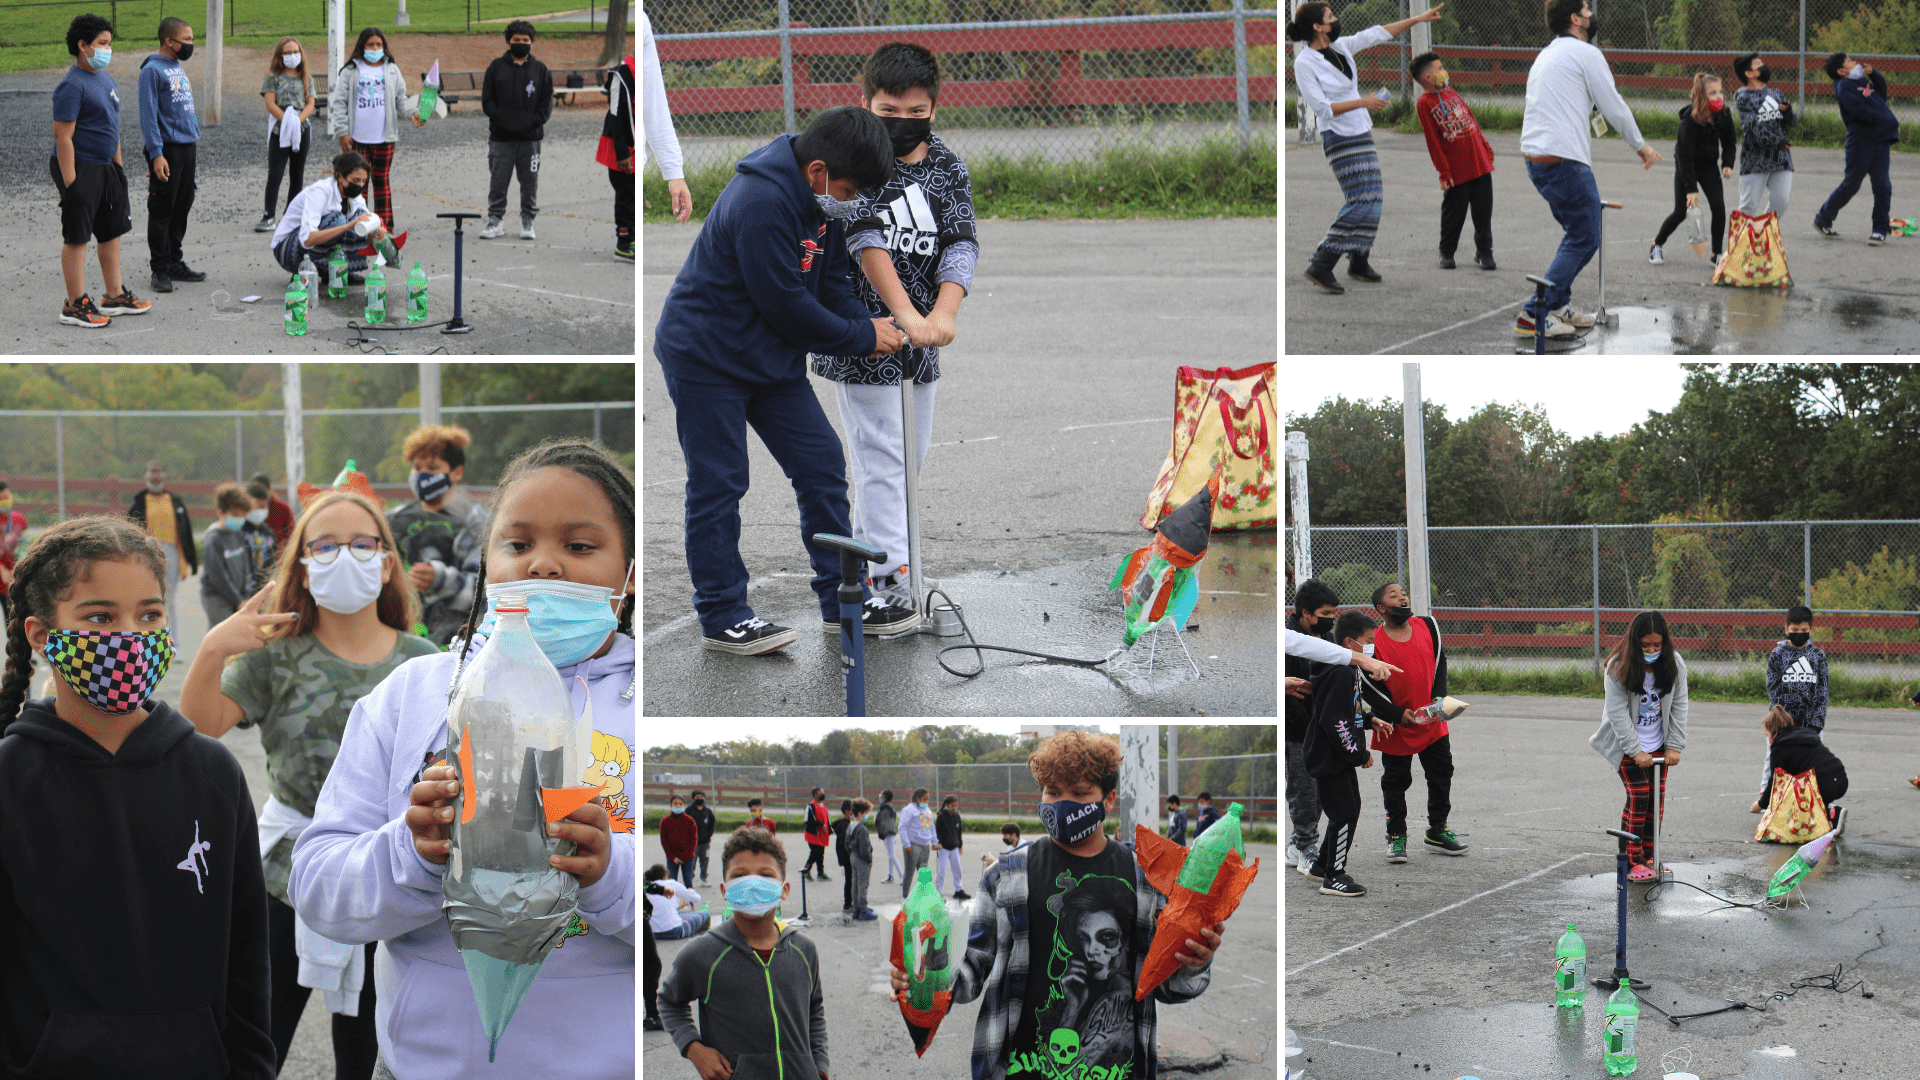 collage of fifth grade students on an outdoor basketball court using an air pump to launch soda bottle rockets